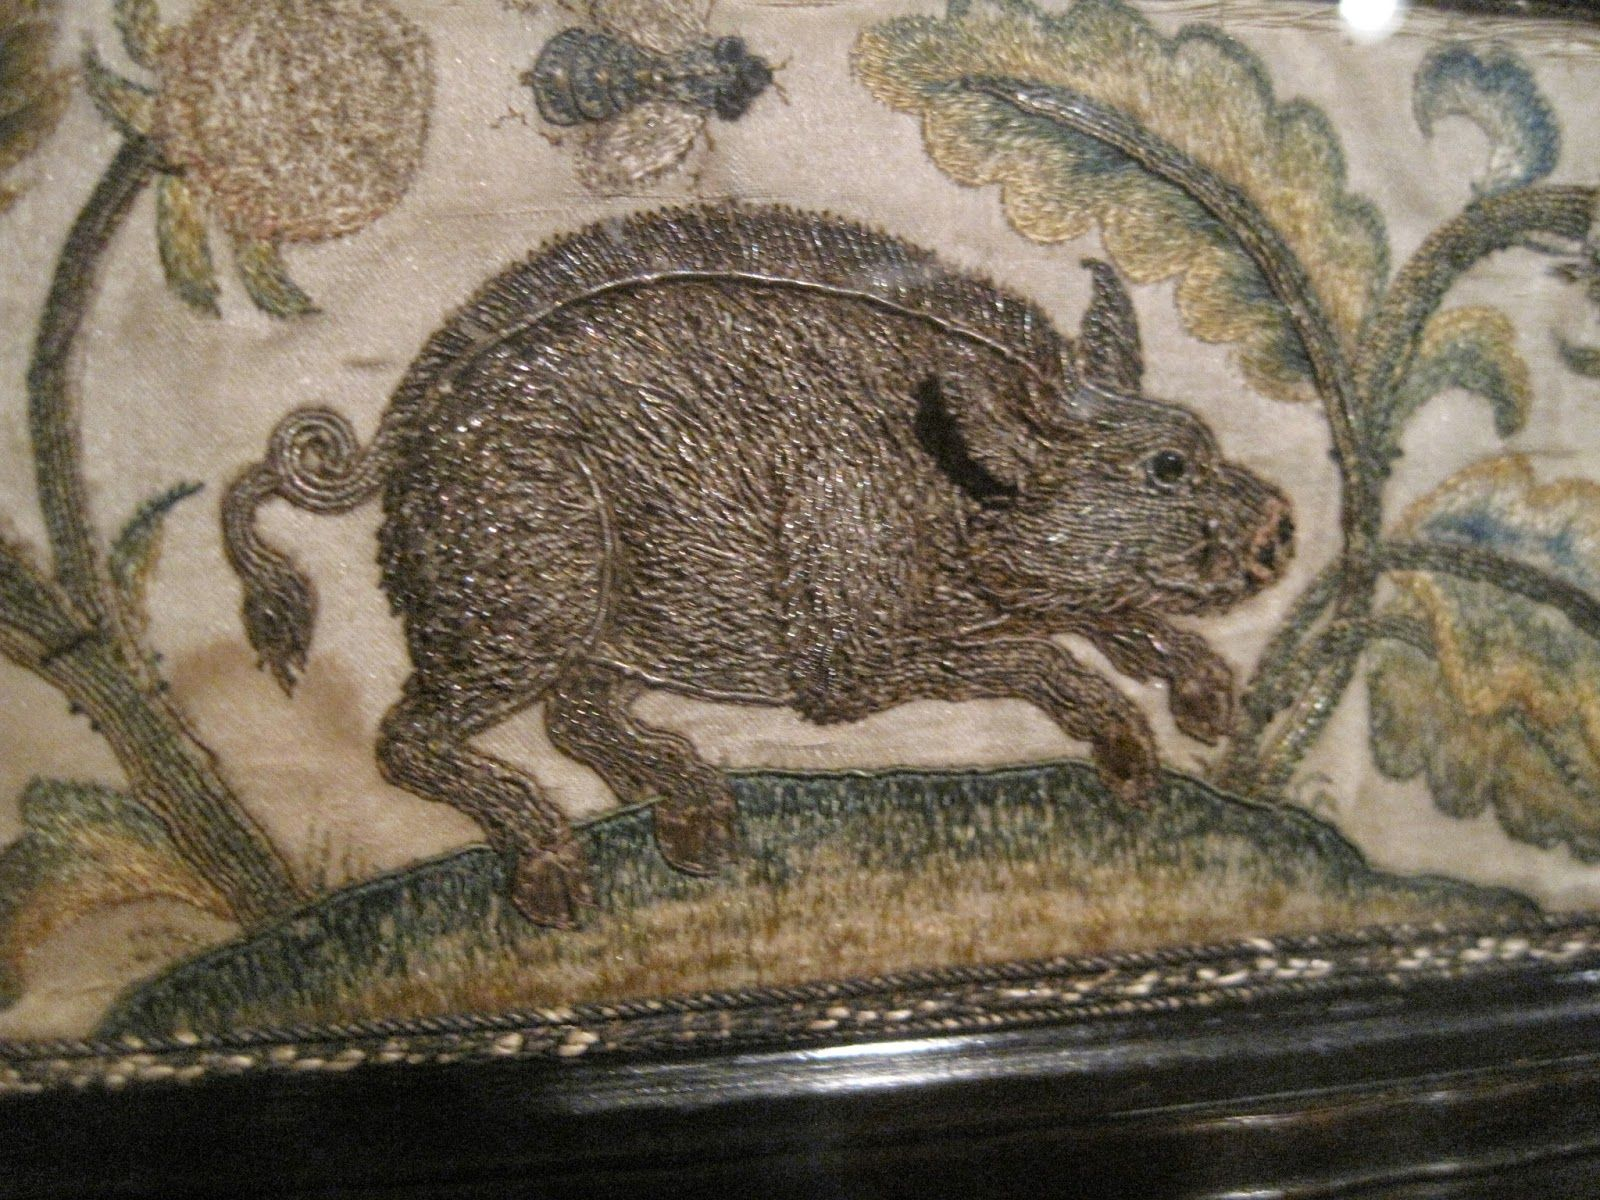 Stumpwork and th century embroidery generally being my favourite